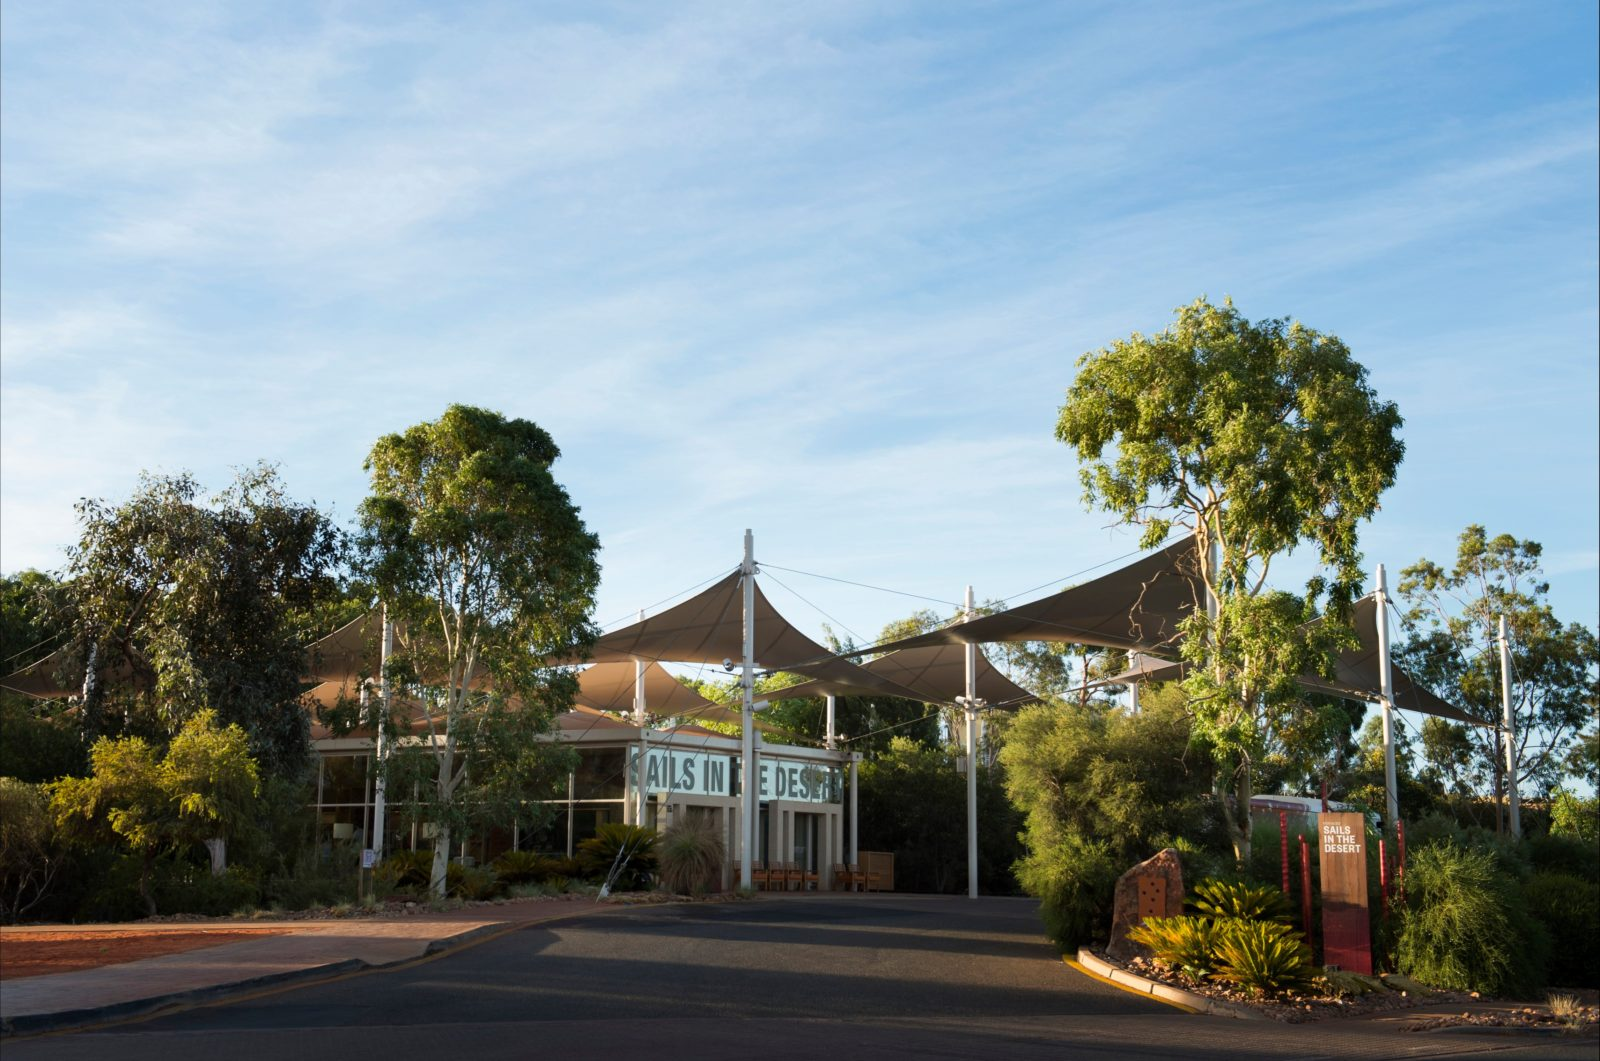 In the heart of Australia's Red Centre, Sails in the Desert offers a luxurious outback experience